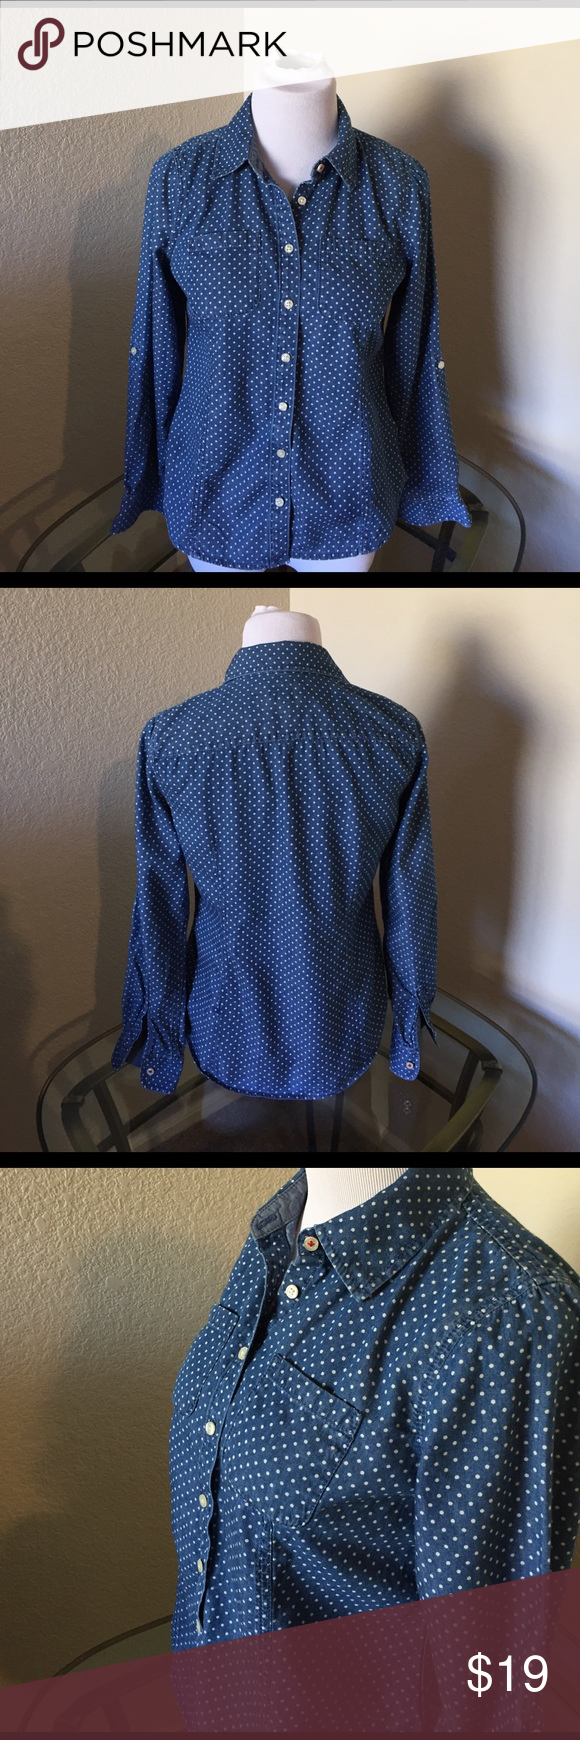 Talbots's Petite  4 blue with white polka dots Size Petite 4 button down blue with white polka dots. The blue is a little lighter than the photos.  Good used condition. Talbots Tops Button Down Shirts